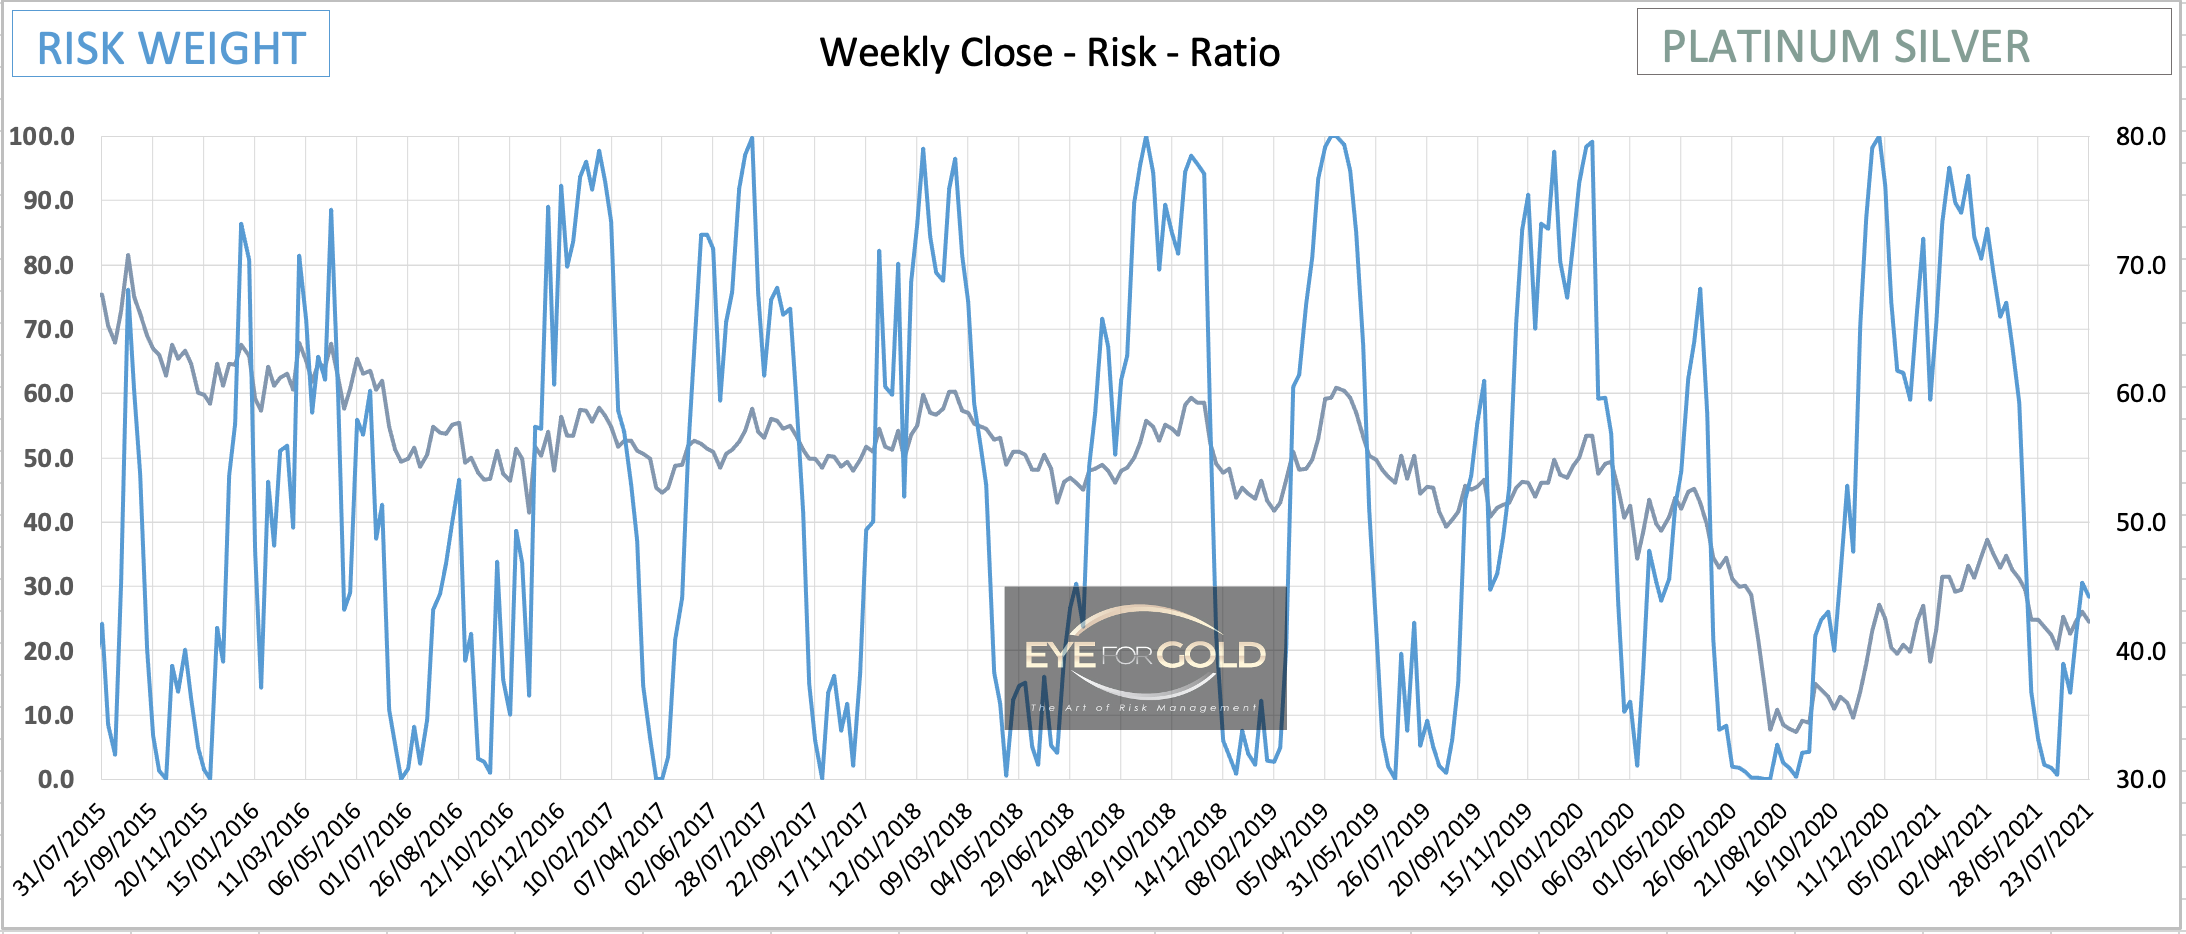 Platinum/Silver Weekly Risk Ratio